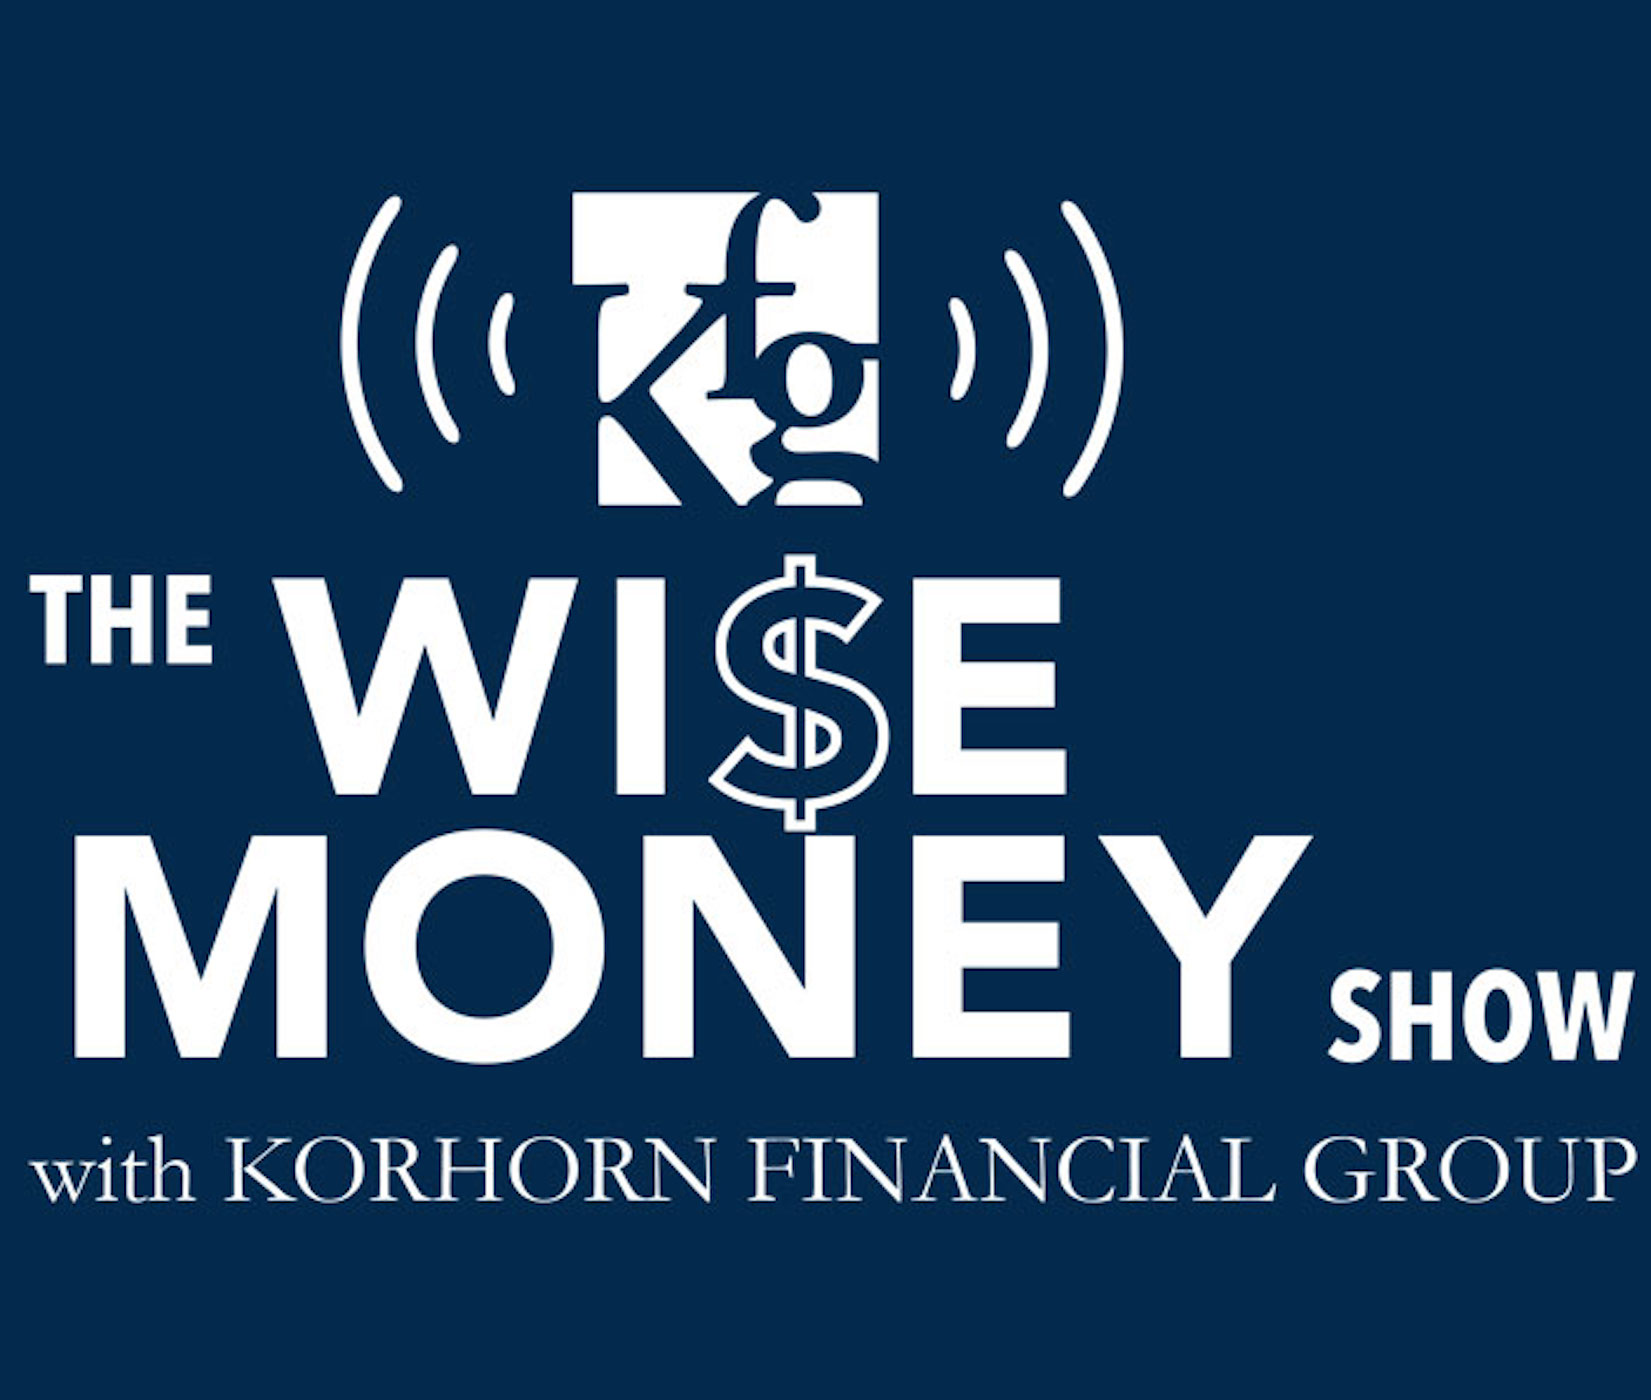 The Wise Money Show with Korhorn Financial Group™